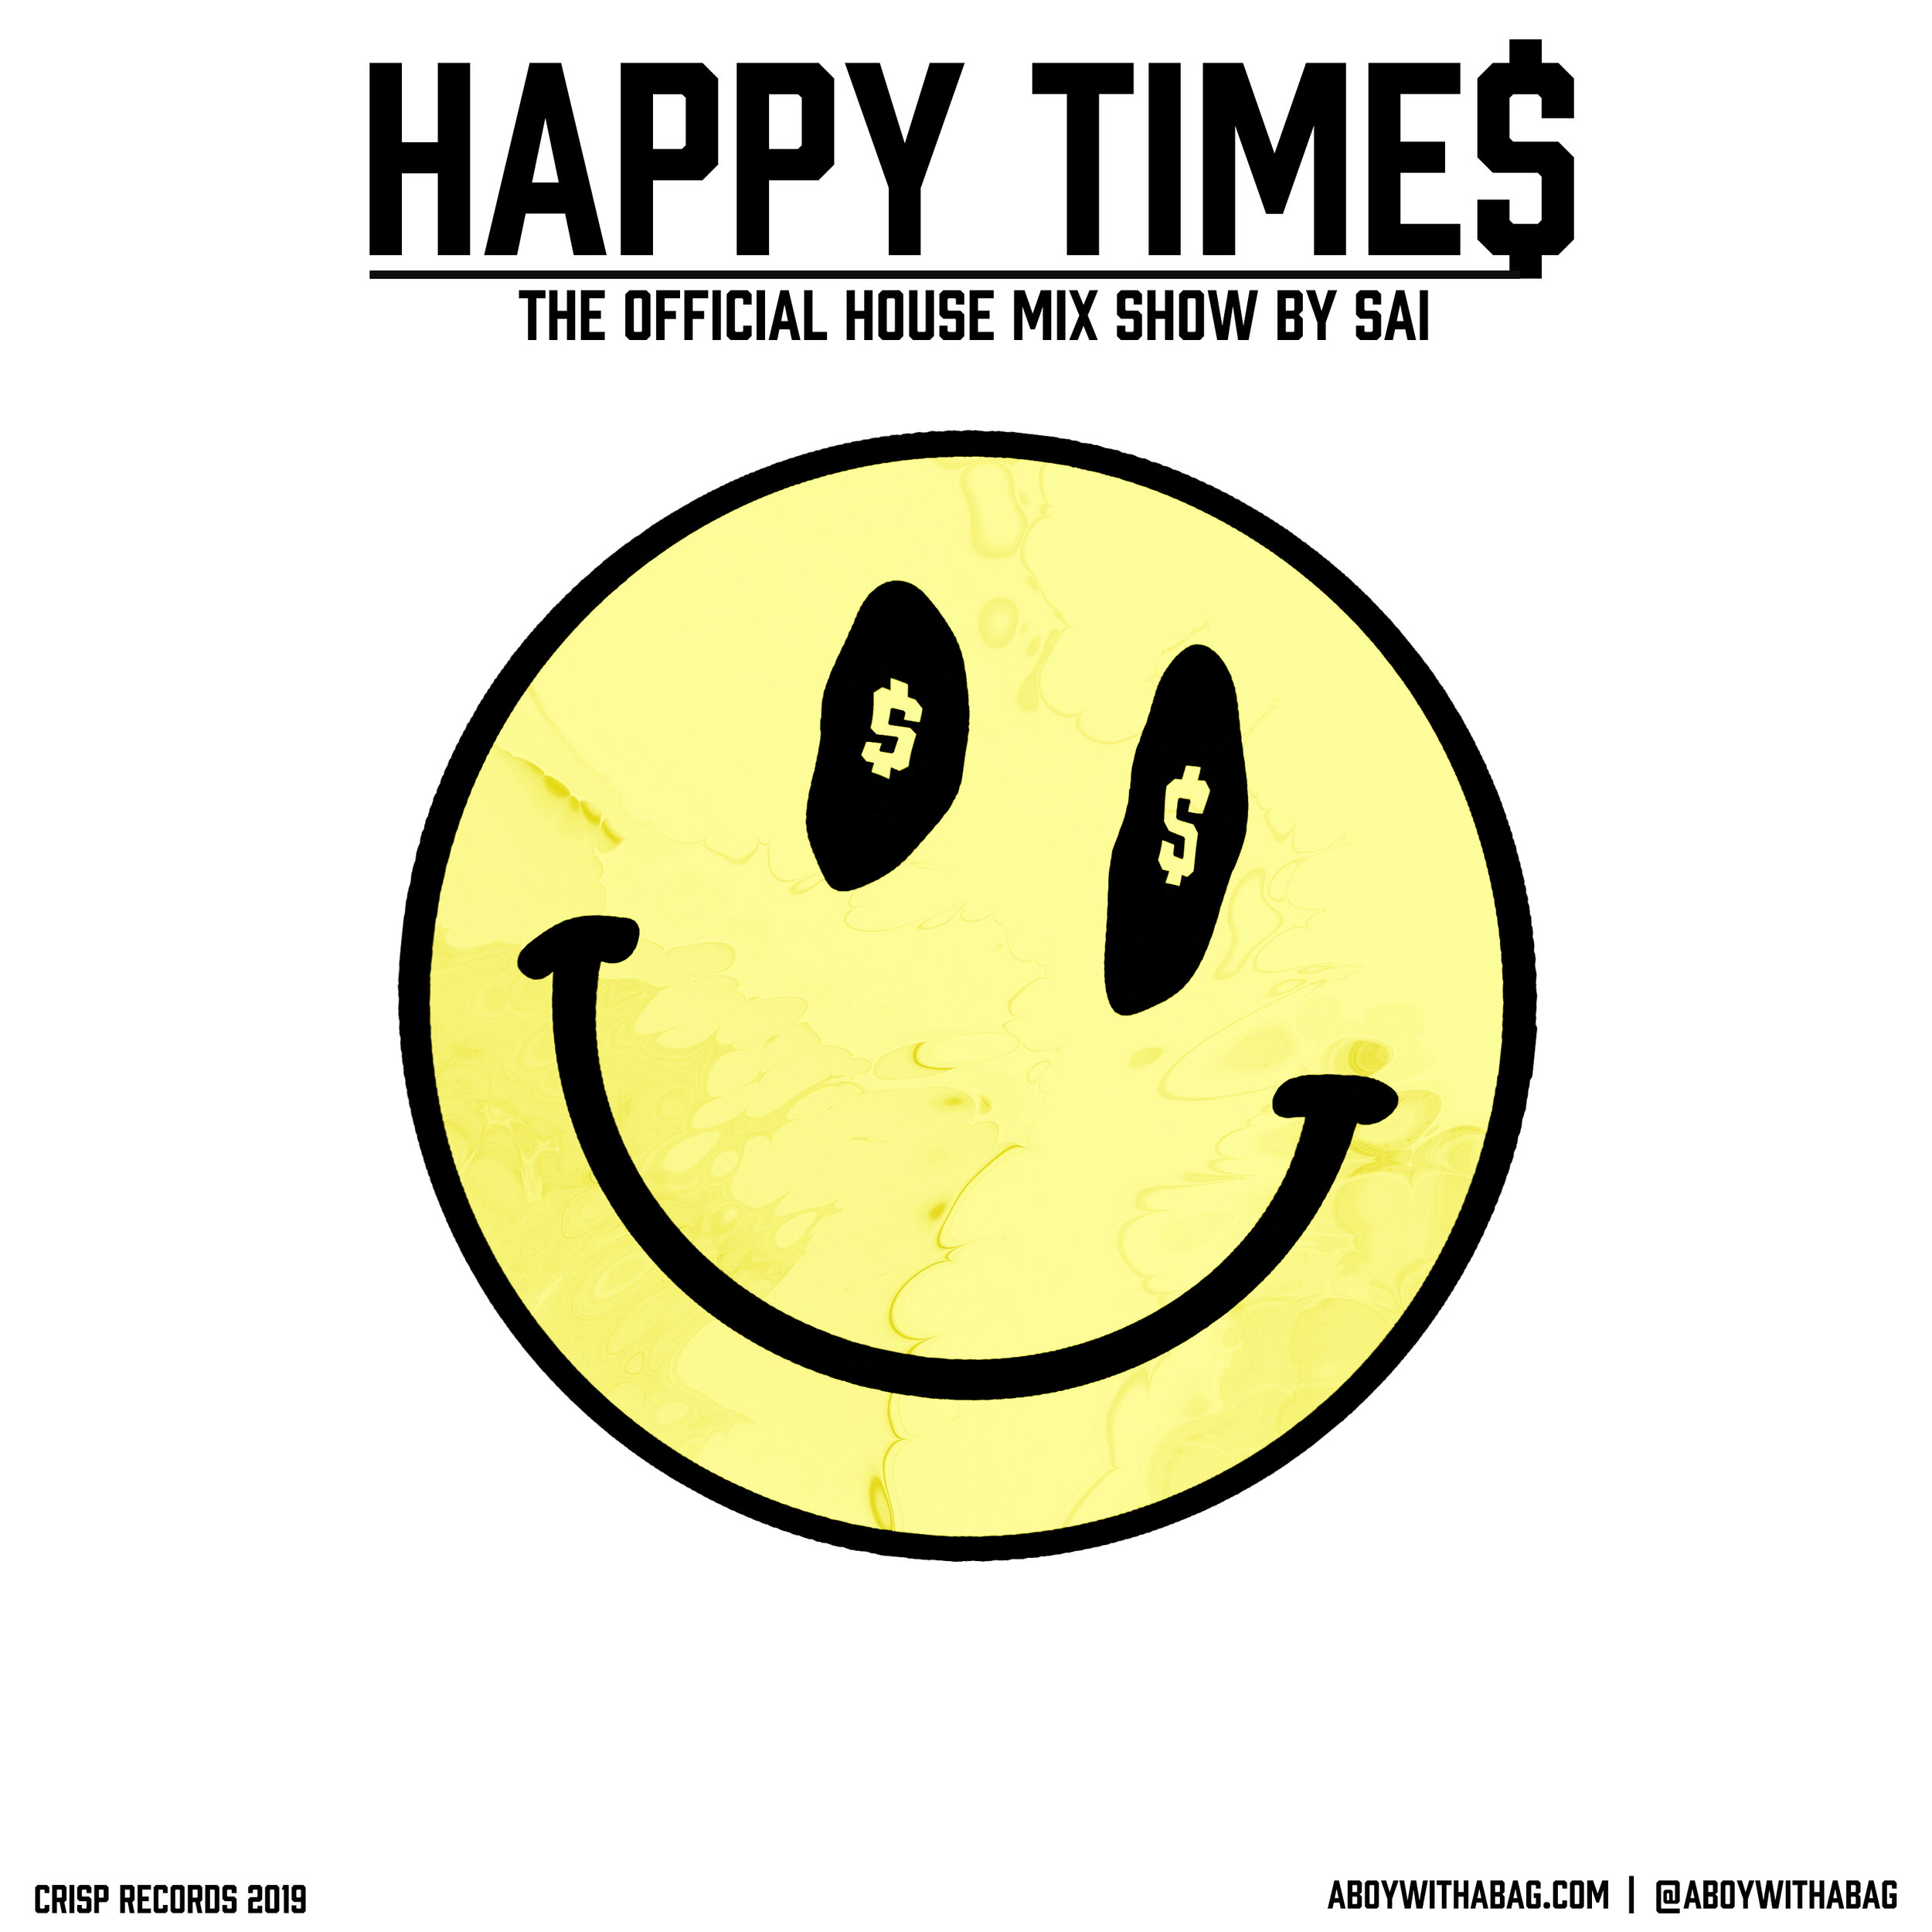 HAPPY TIMES ABOYWITHABAG podcast show by SAI